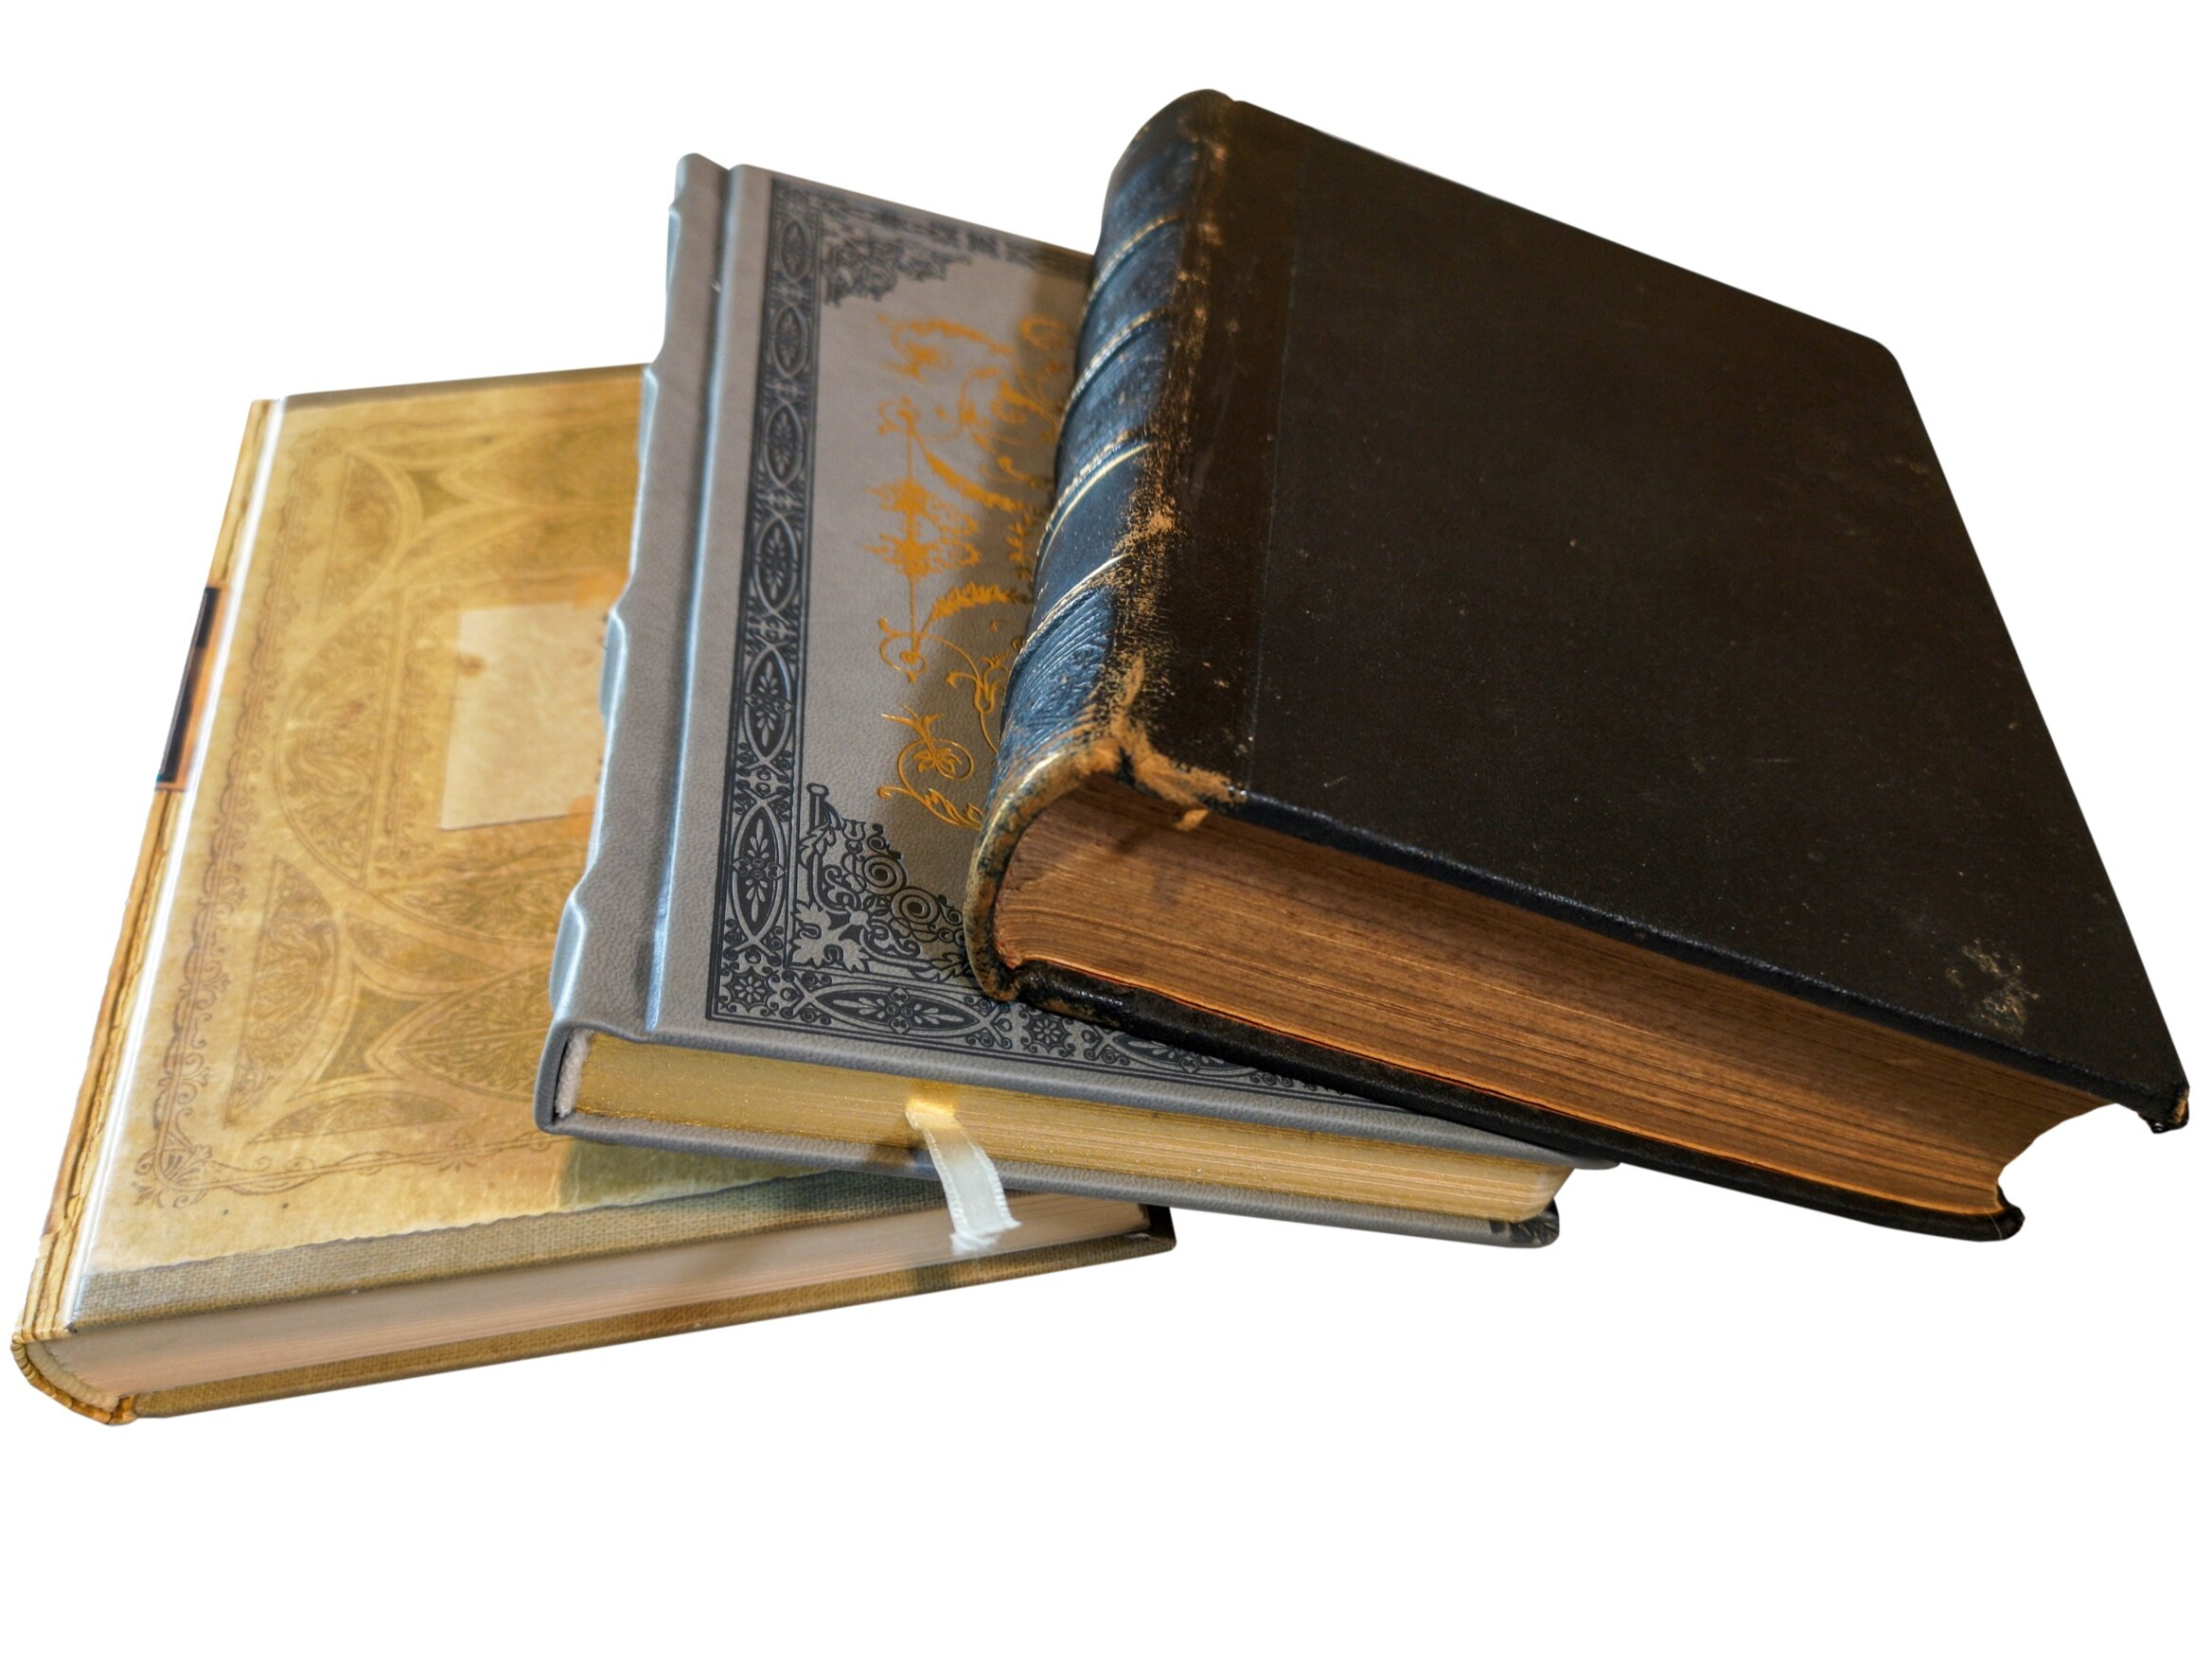 Bibles for the Arab World  Place the Word of God in the hands of Arab people across North Africa and Middle East.